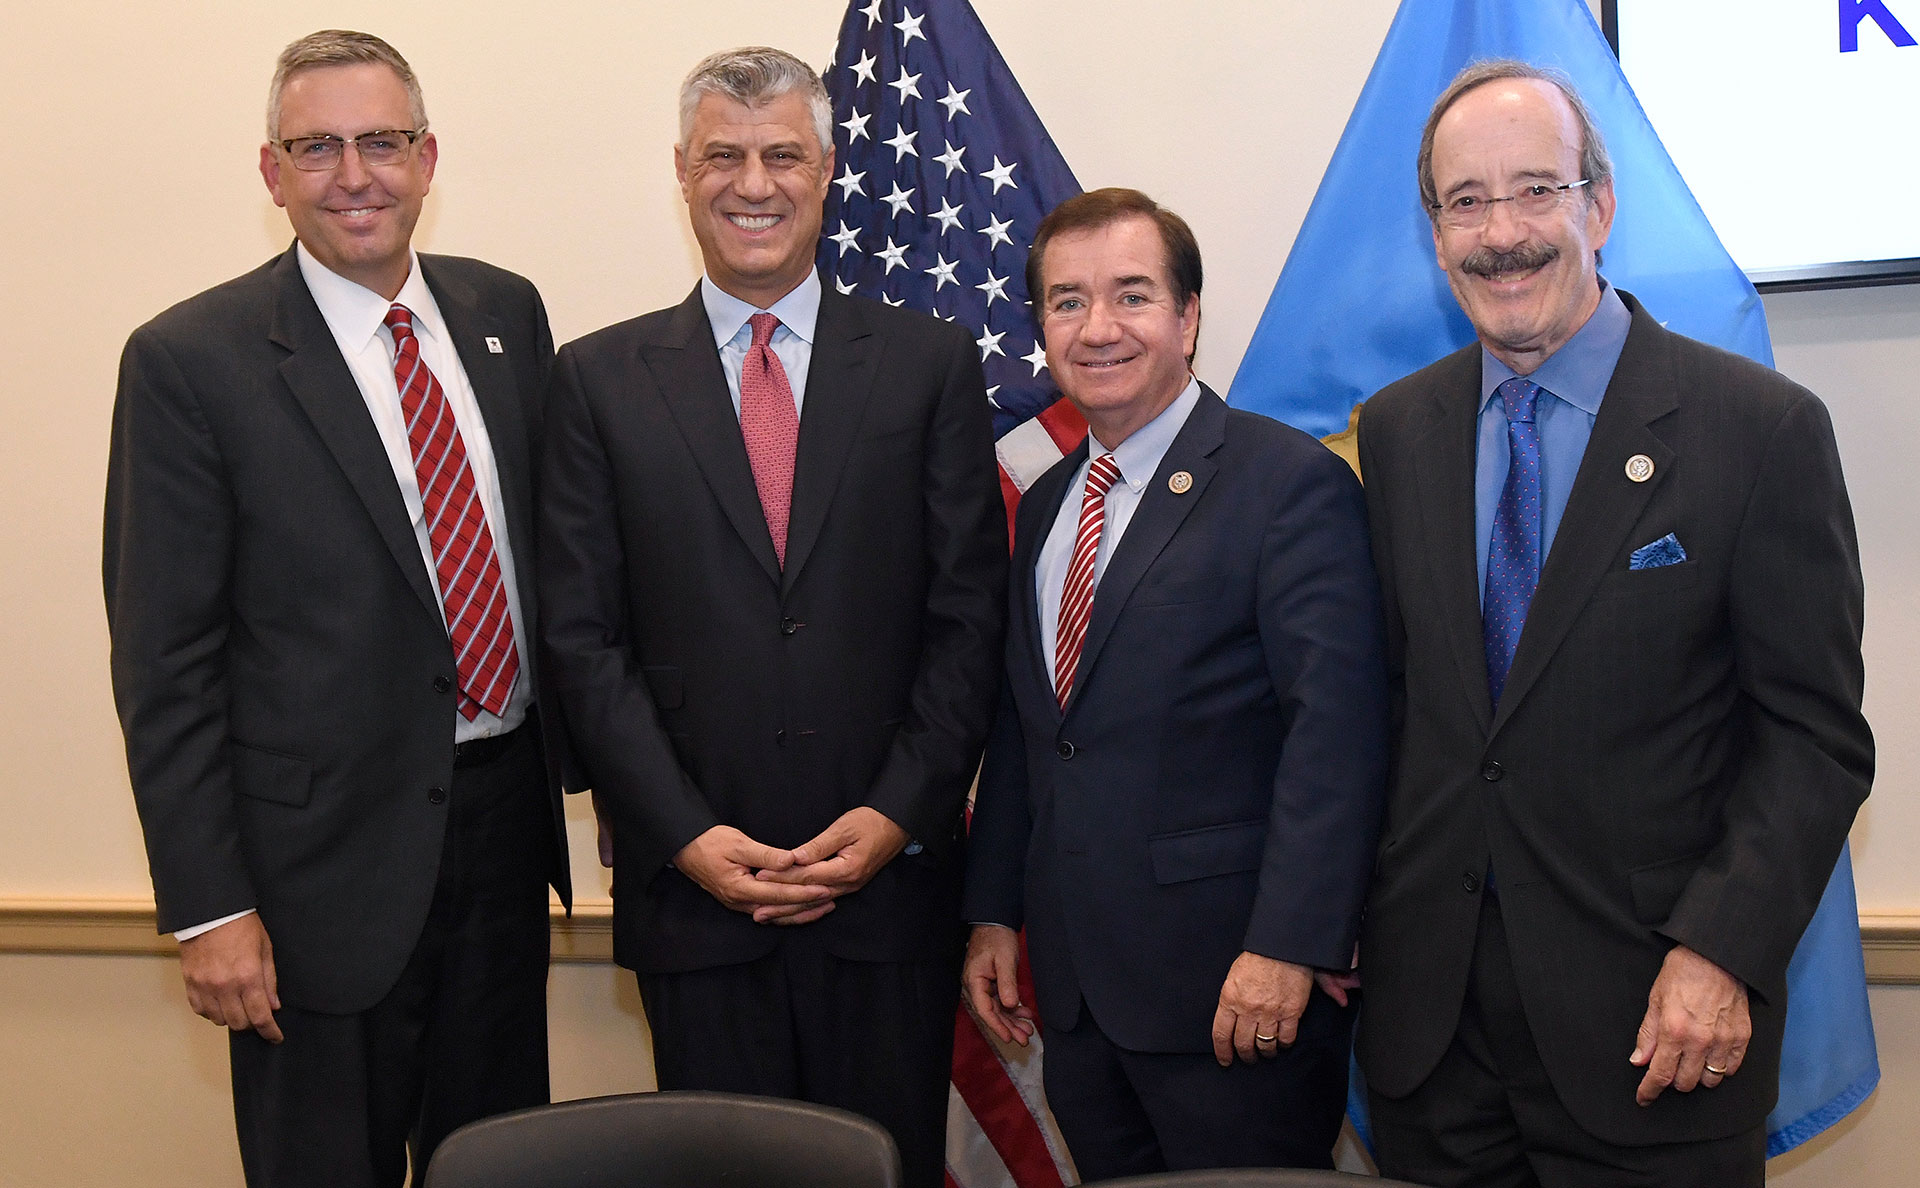 From left, Jonathan Nash, acting CEO of Millennium Challenge Corporation, Kosovo President Hashim Thaci, Rep. Ed Royce of California and Rep. Eliot Engel of New York stand together after Nash and Thaci signed the Kosovo Threshold Program, Tuesday, Sept. 12, 2017 in Washington, D.C.